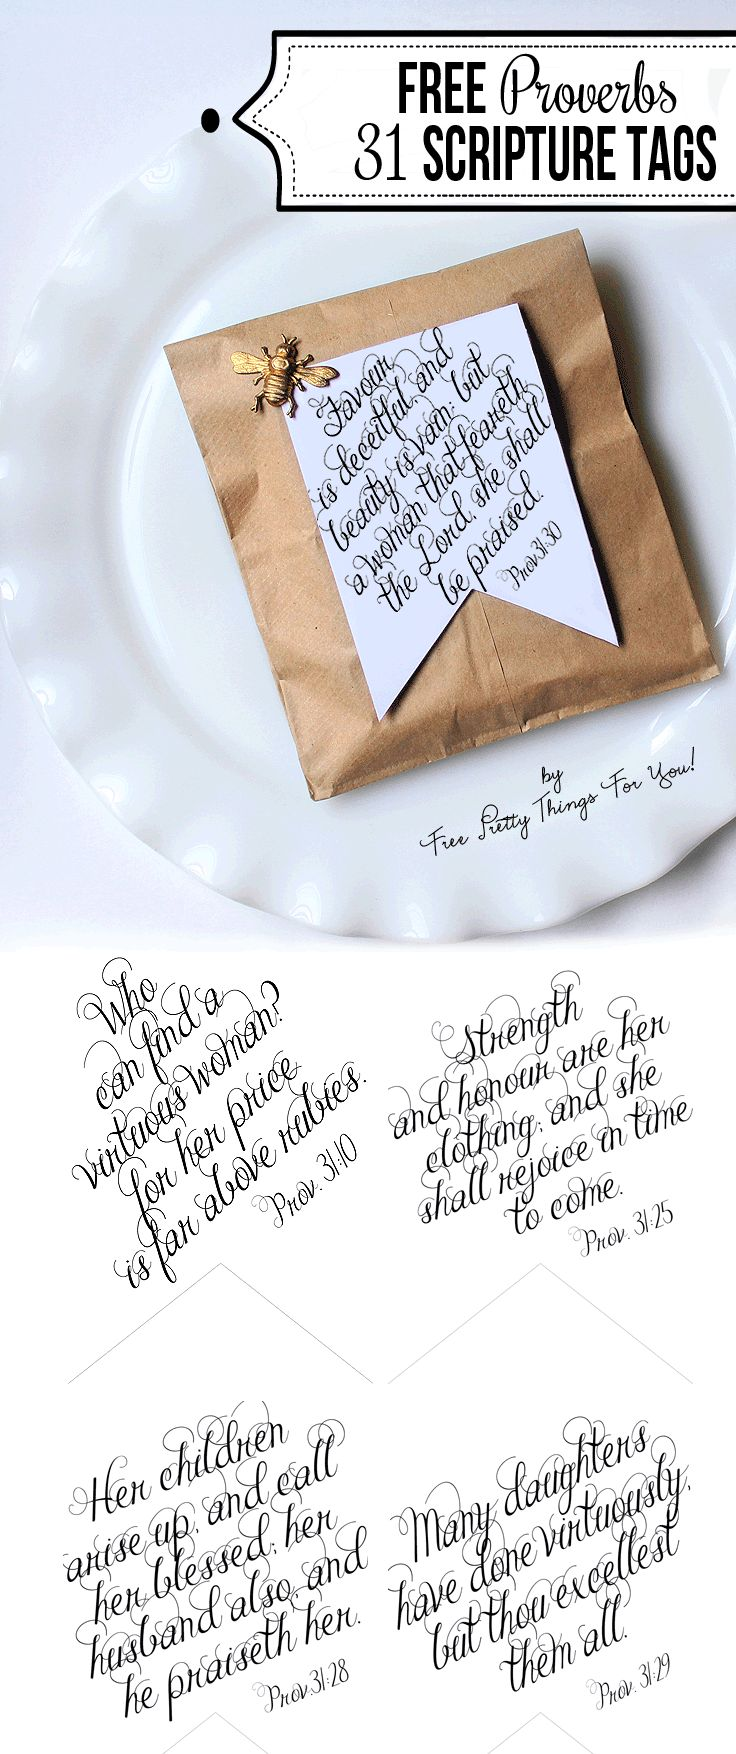 Printable Bible Verses: Proverbs 31 Tags.. 7 scripture tags total!